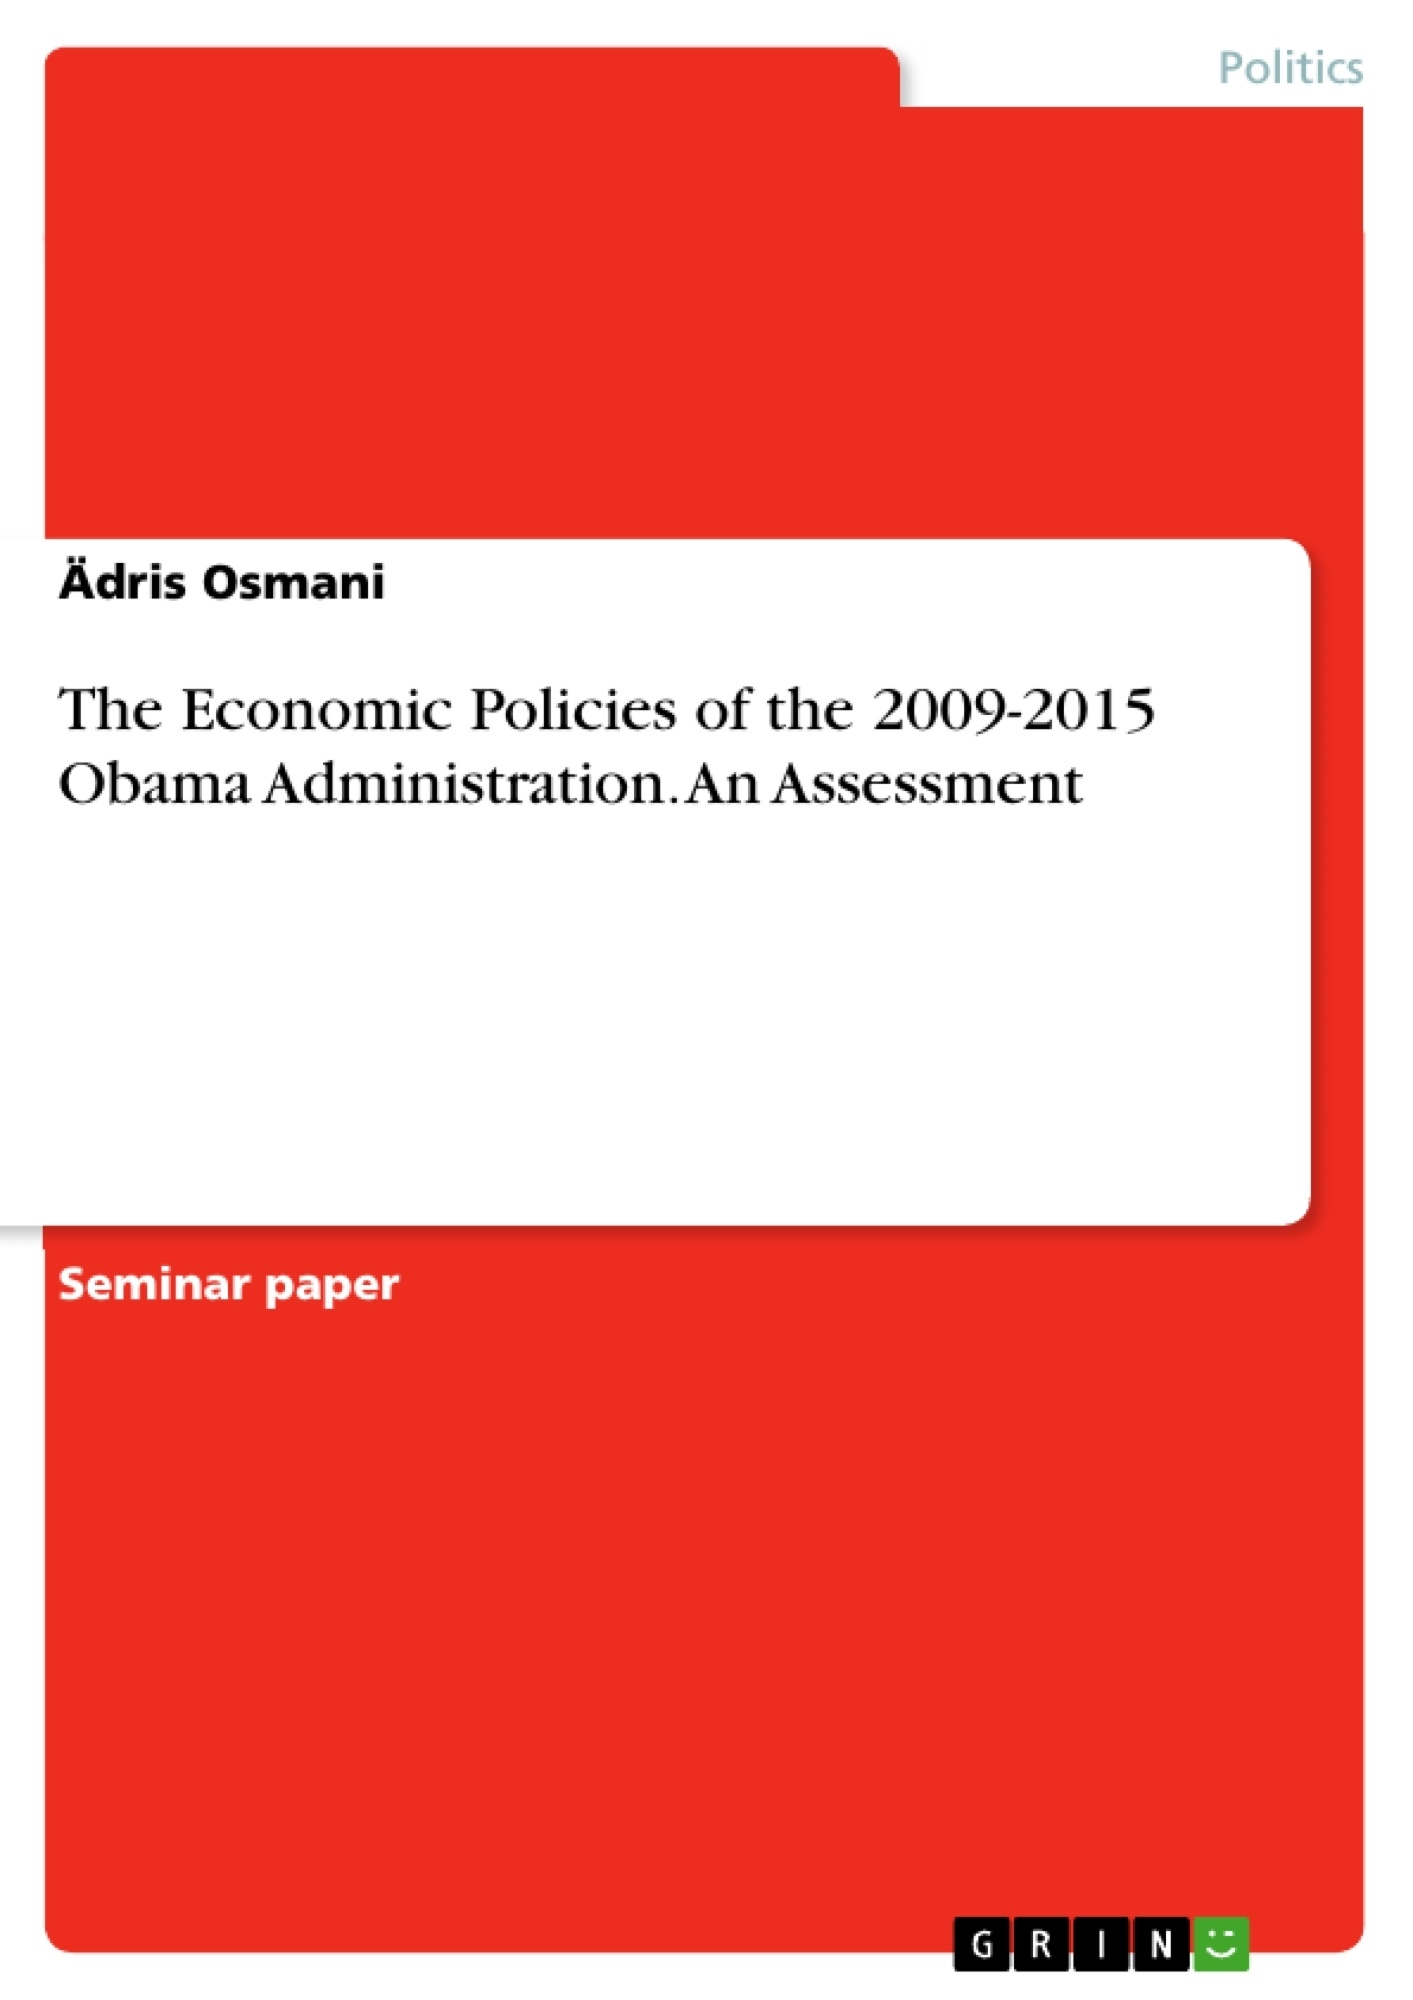 Title: The Economic Policies of the 2009-2015 Obama Administration. An Assessment